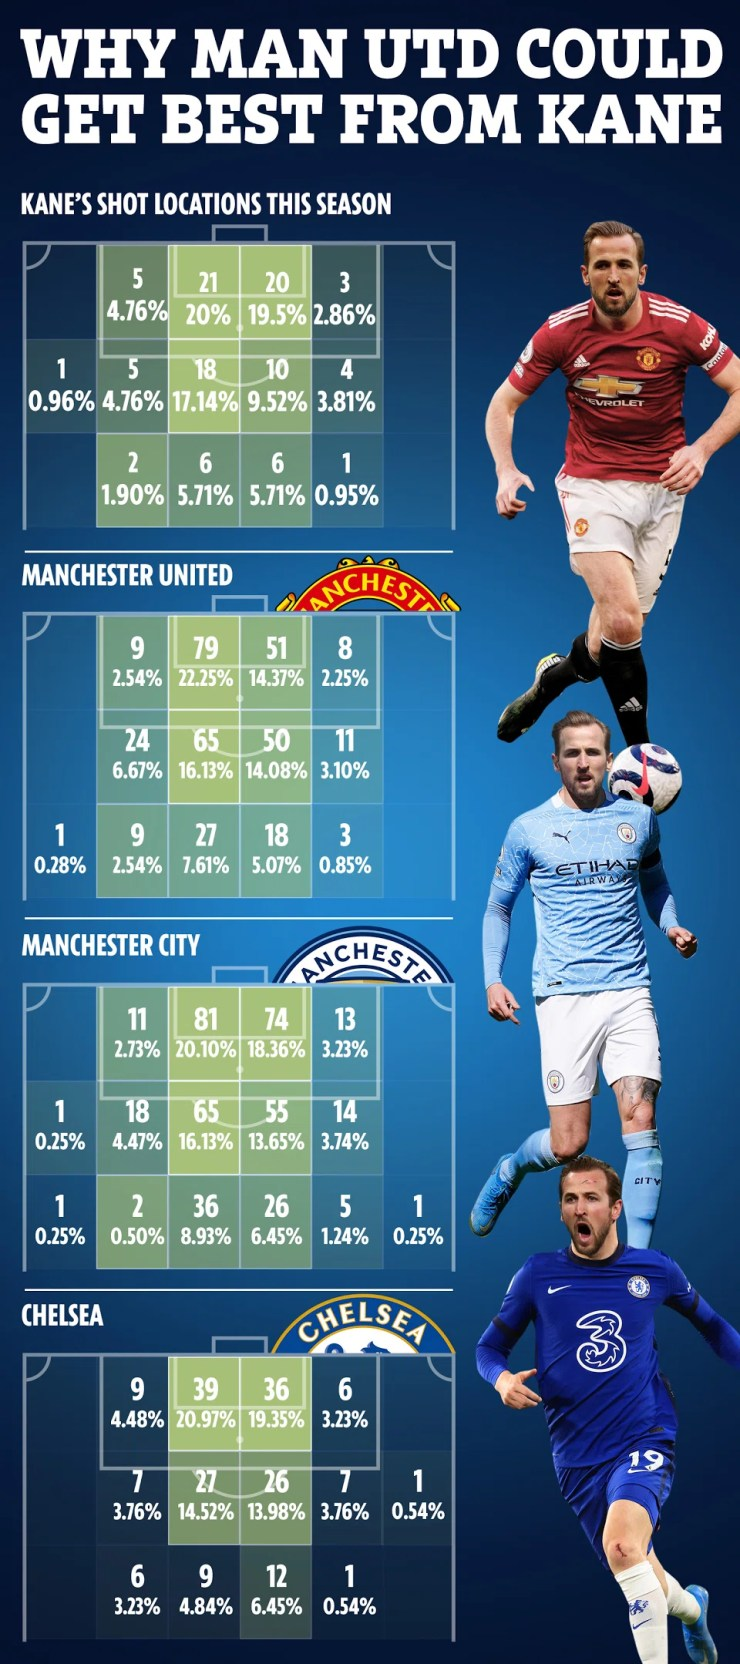 Man Utd create the most chances where Spurs striker Kane likes to shoot from